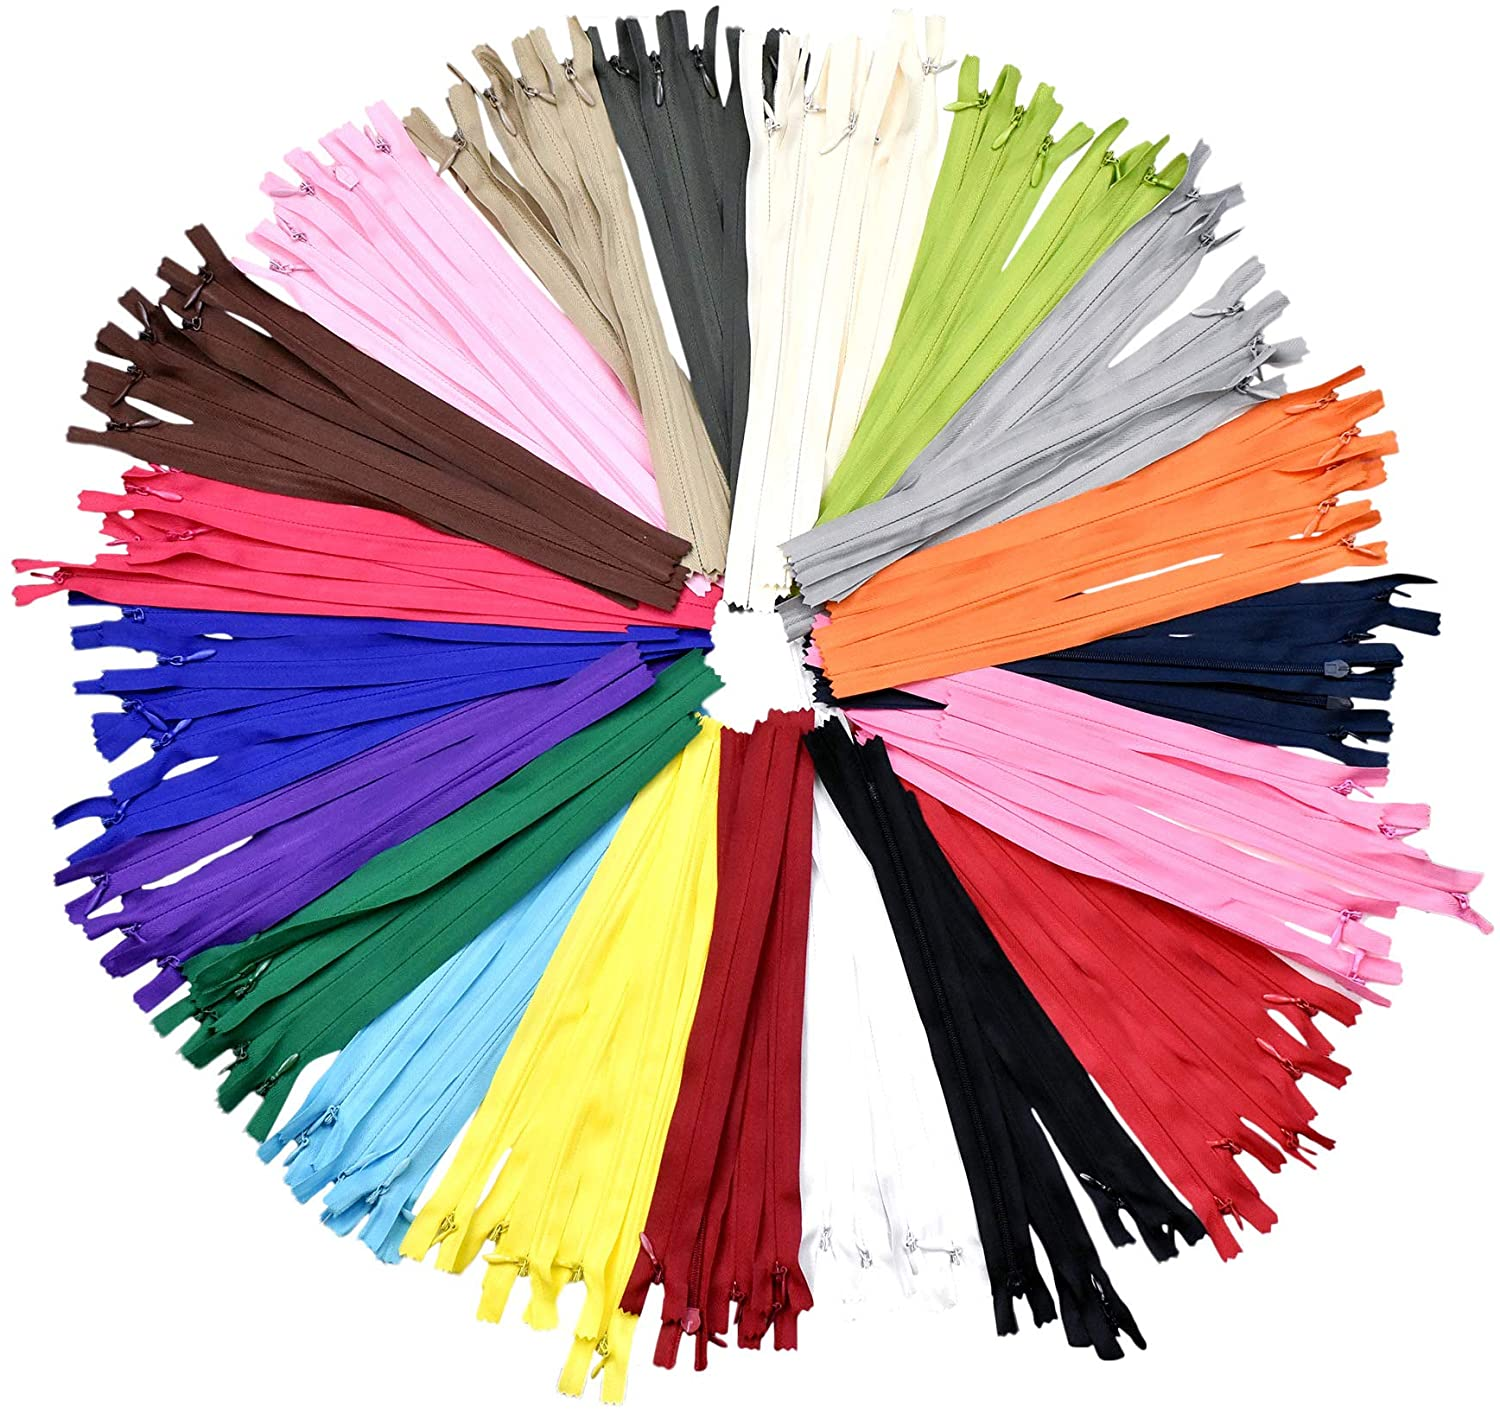 Nylon Invisible Zipper for Sewing, 10 Inch Bulk Hidden Zipper Supplies in 20 Assorted Colors; by Mandala Crafts